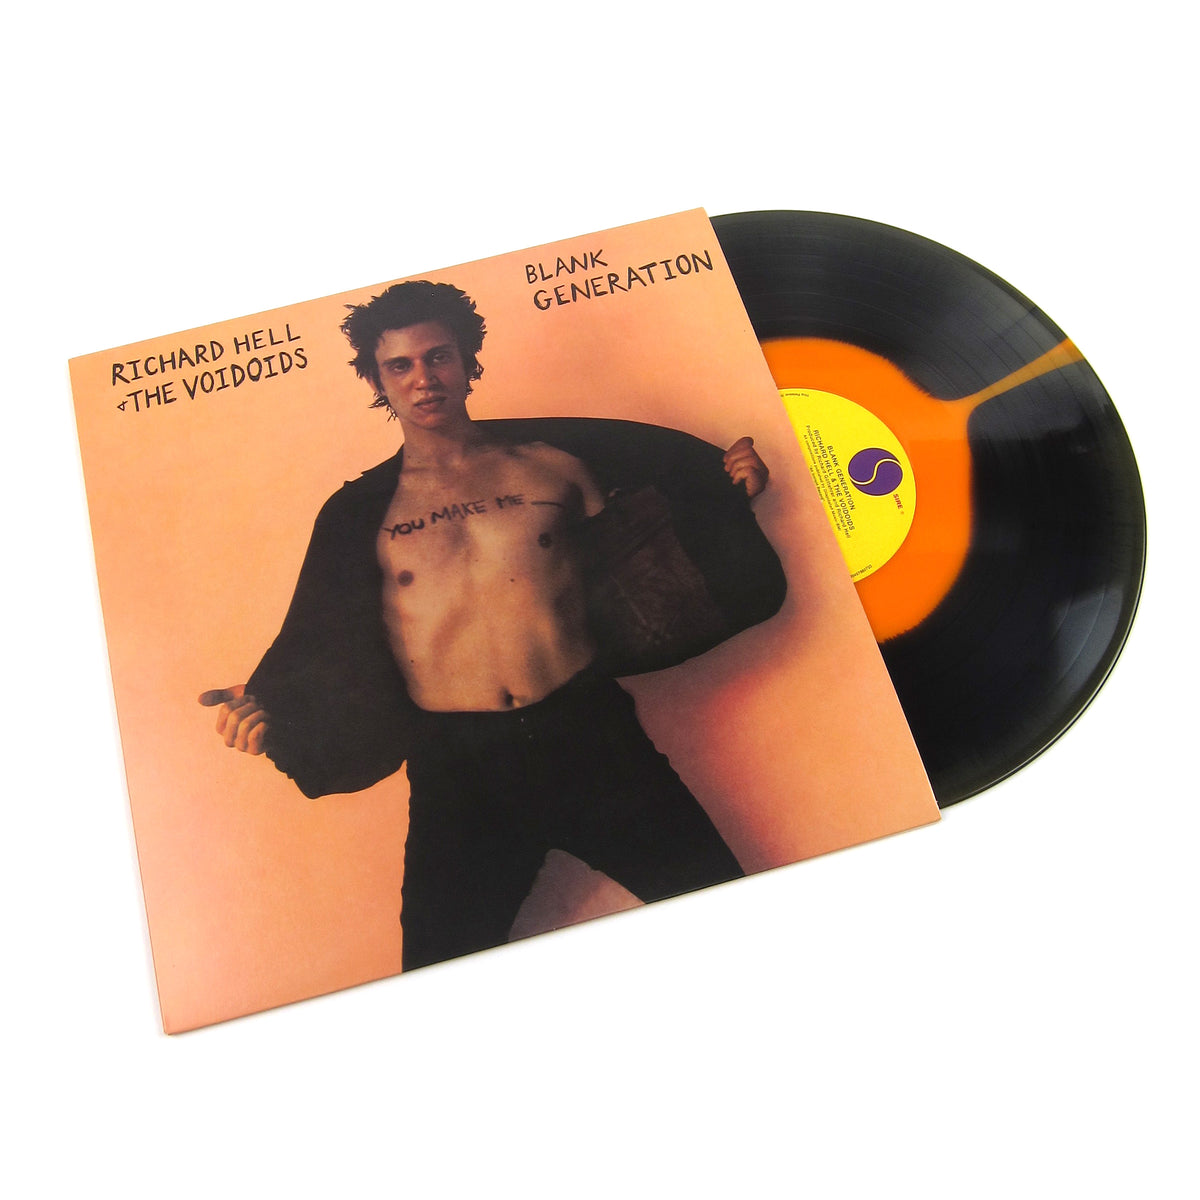 Richard Hell & The Voidoids: Blank Generation (Indie Exclusive Colored Vinyl) Vinyl LP